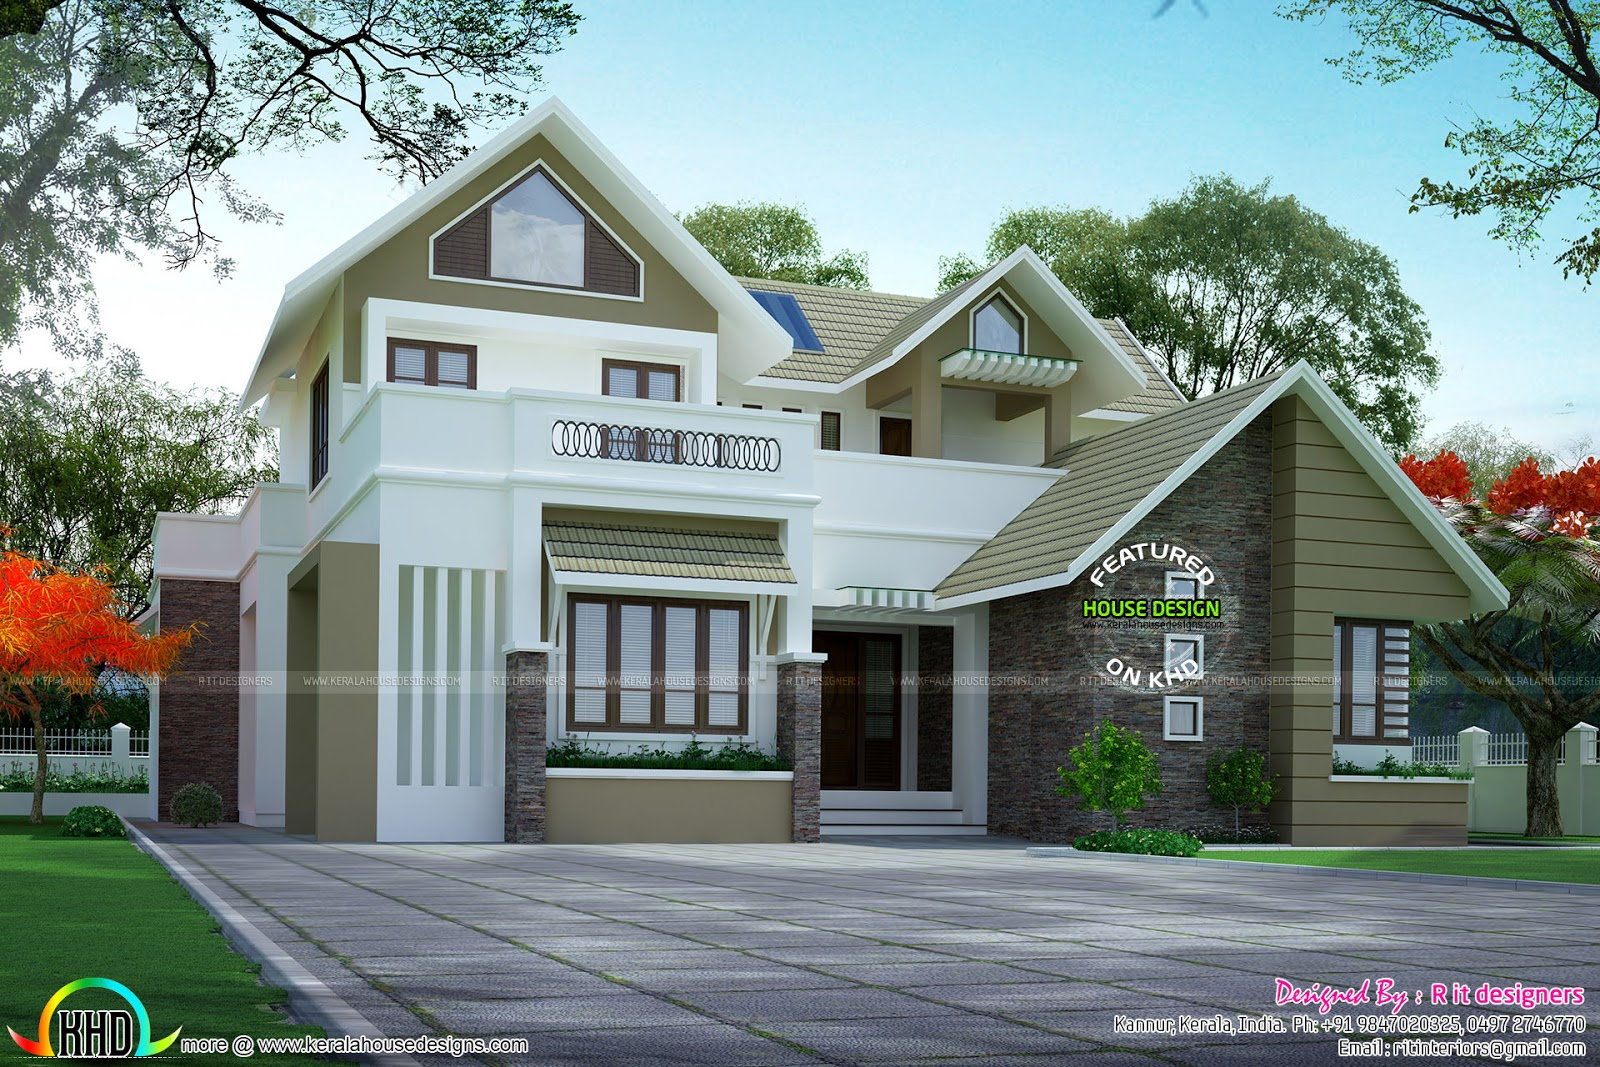 Brilliant Beautiful House Image Largest Home Design Picture Inspirations Pitcheantrous